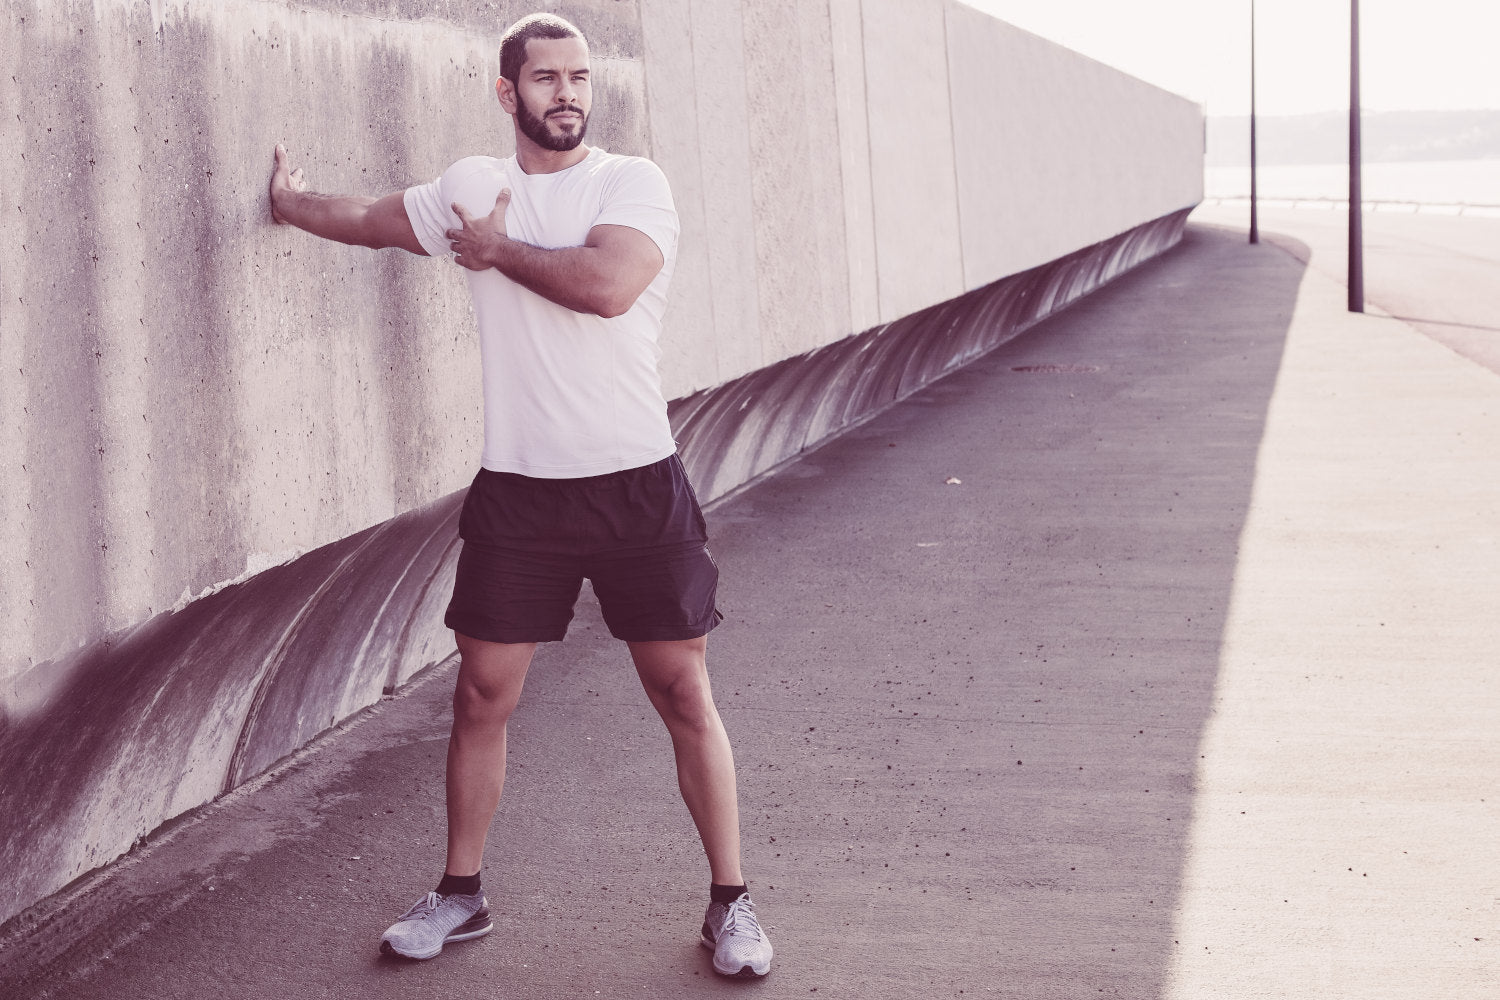 Man using a concrete wall to stretch shoulder